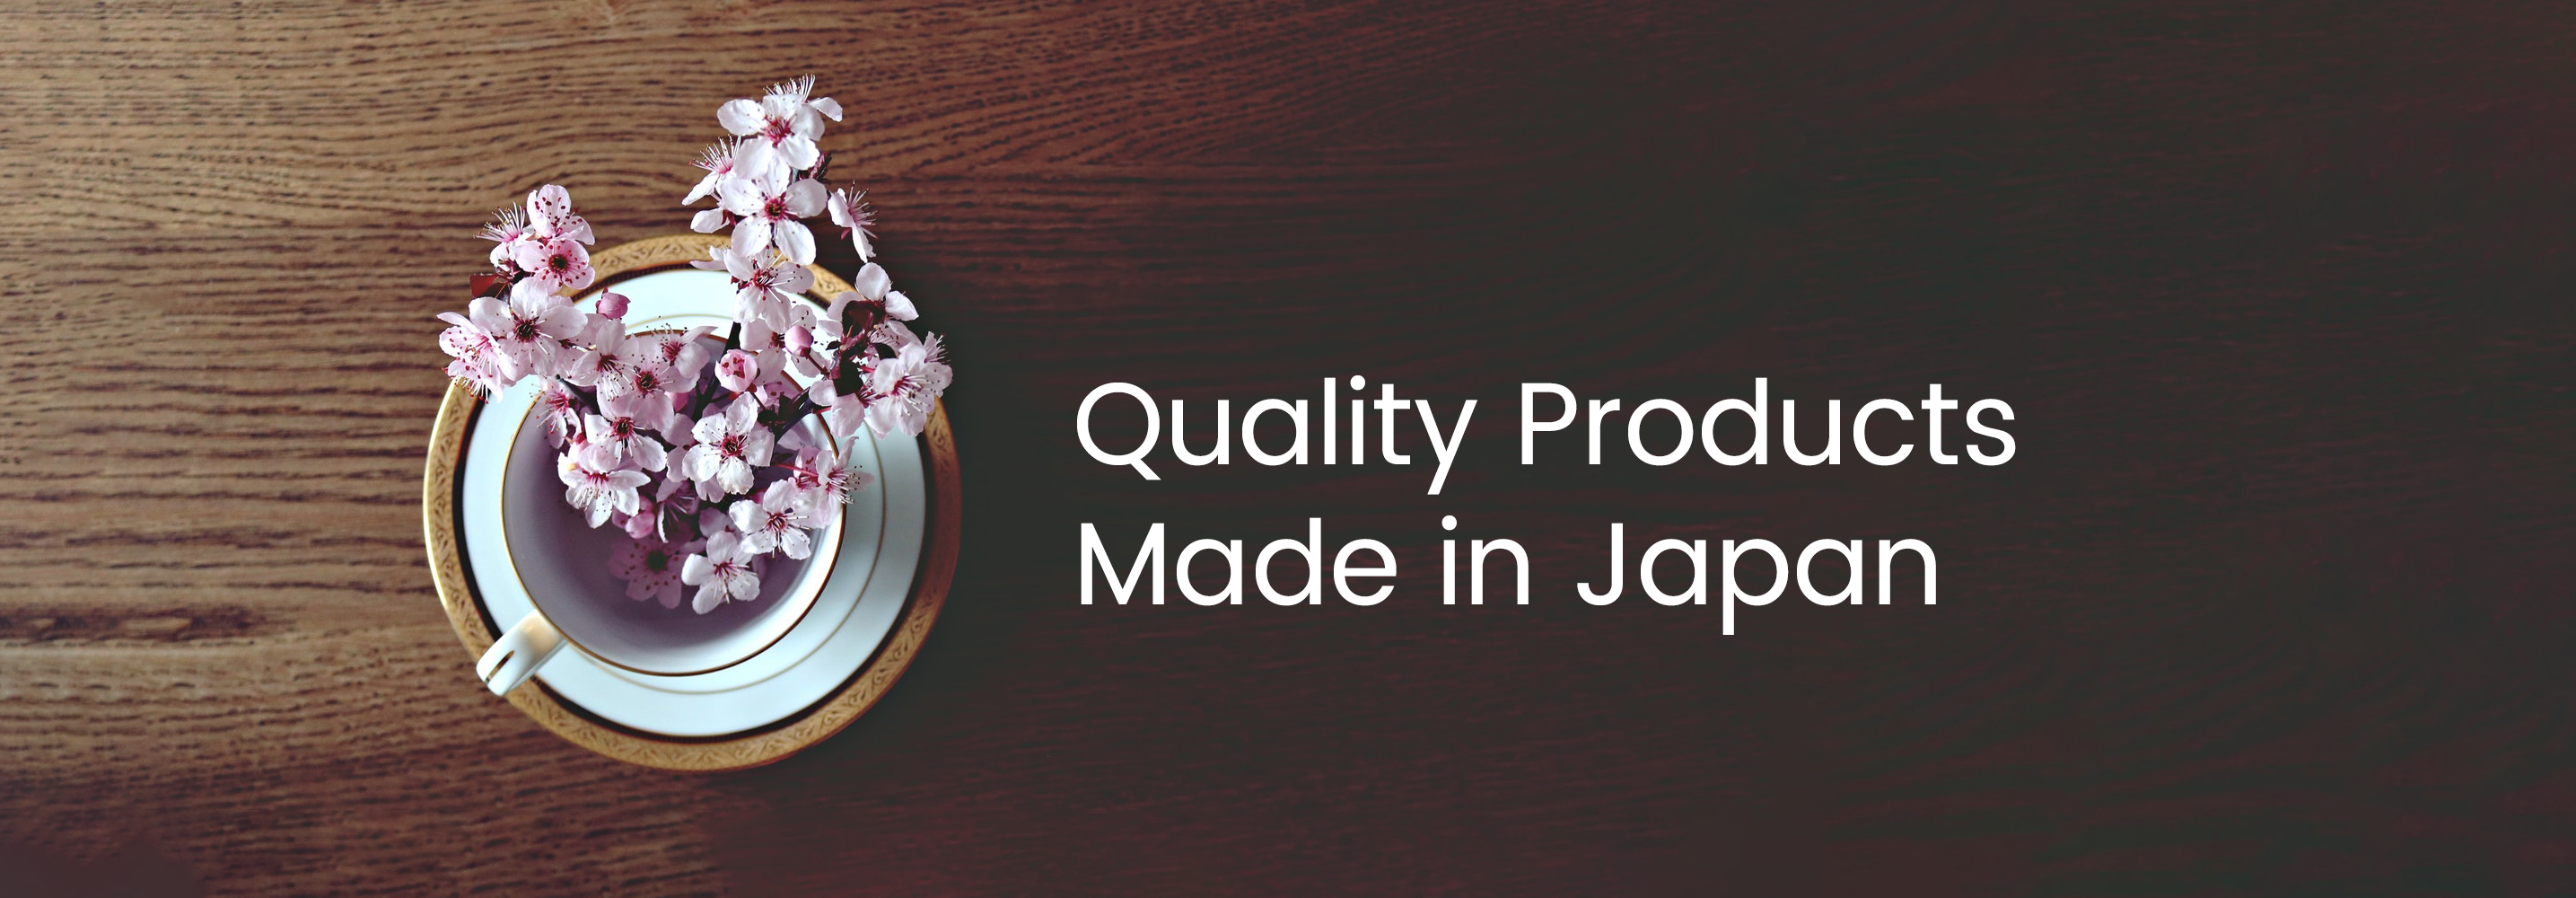 Japan Central - Quality Products Made in Japan